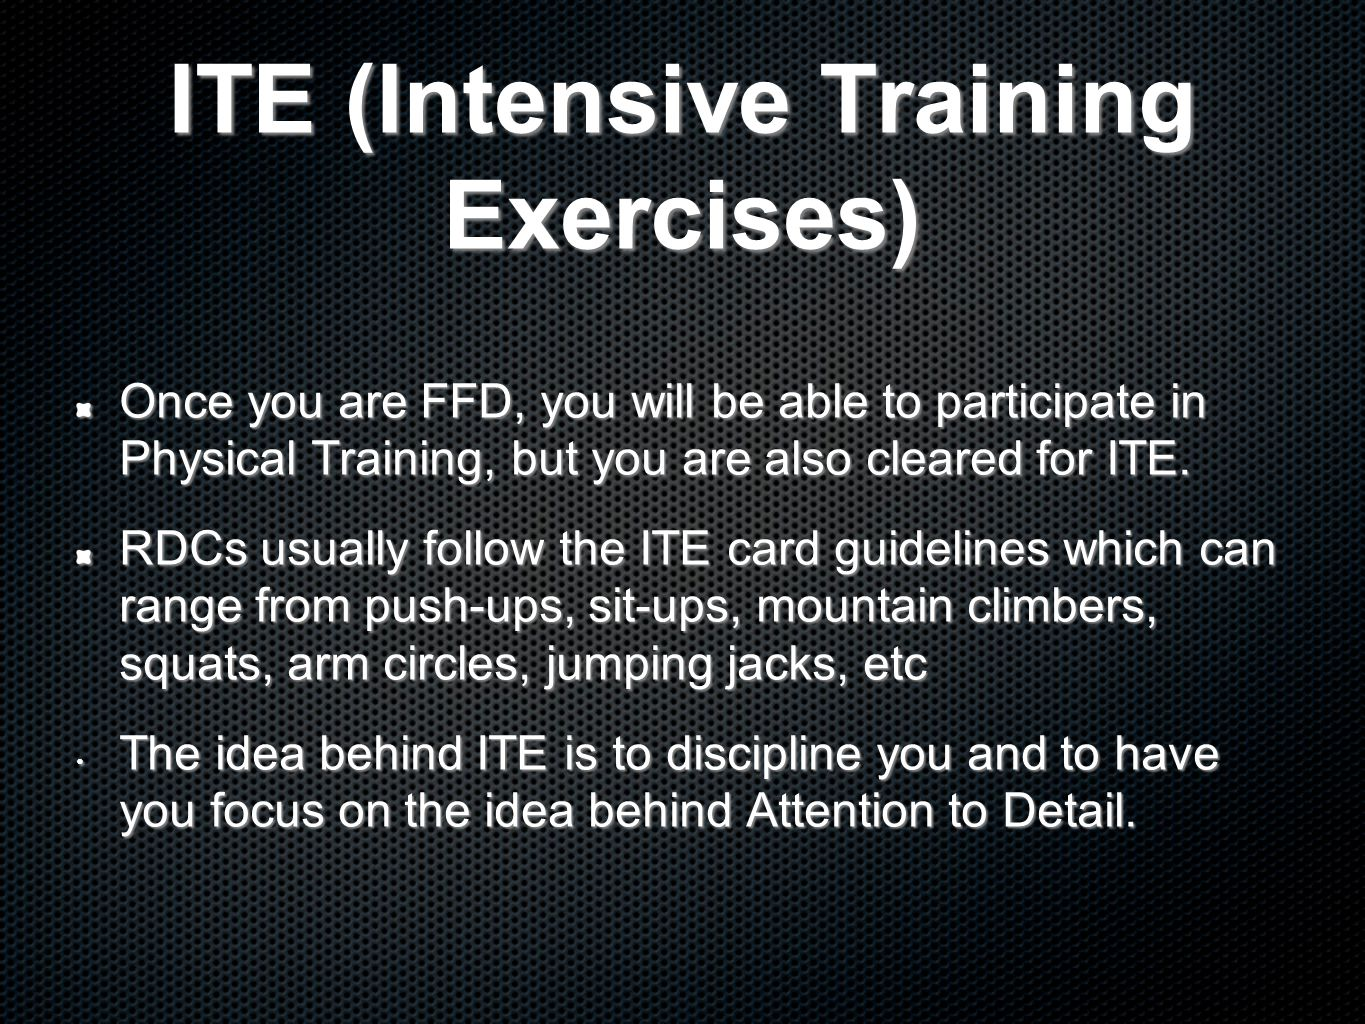 ITE (Intensive Training Exercises)